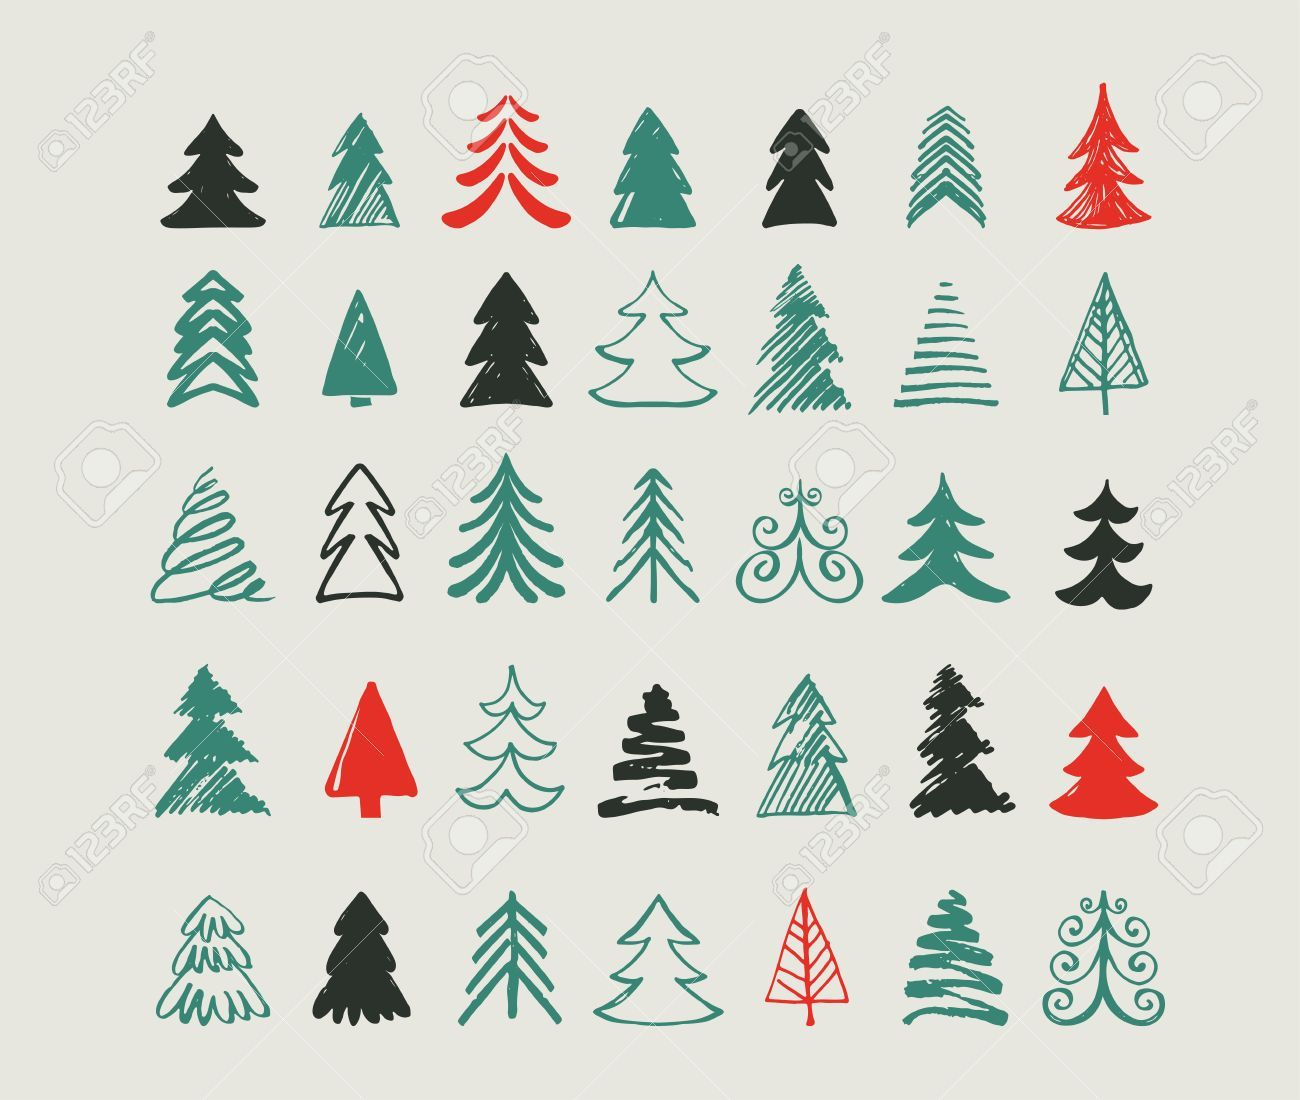 Hand Drawn Christmas Tree Icons Doodles And Sketches Christmas Tree Drawing Tree Drawing Simple Christmas Tree Graphic